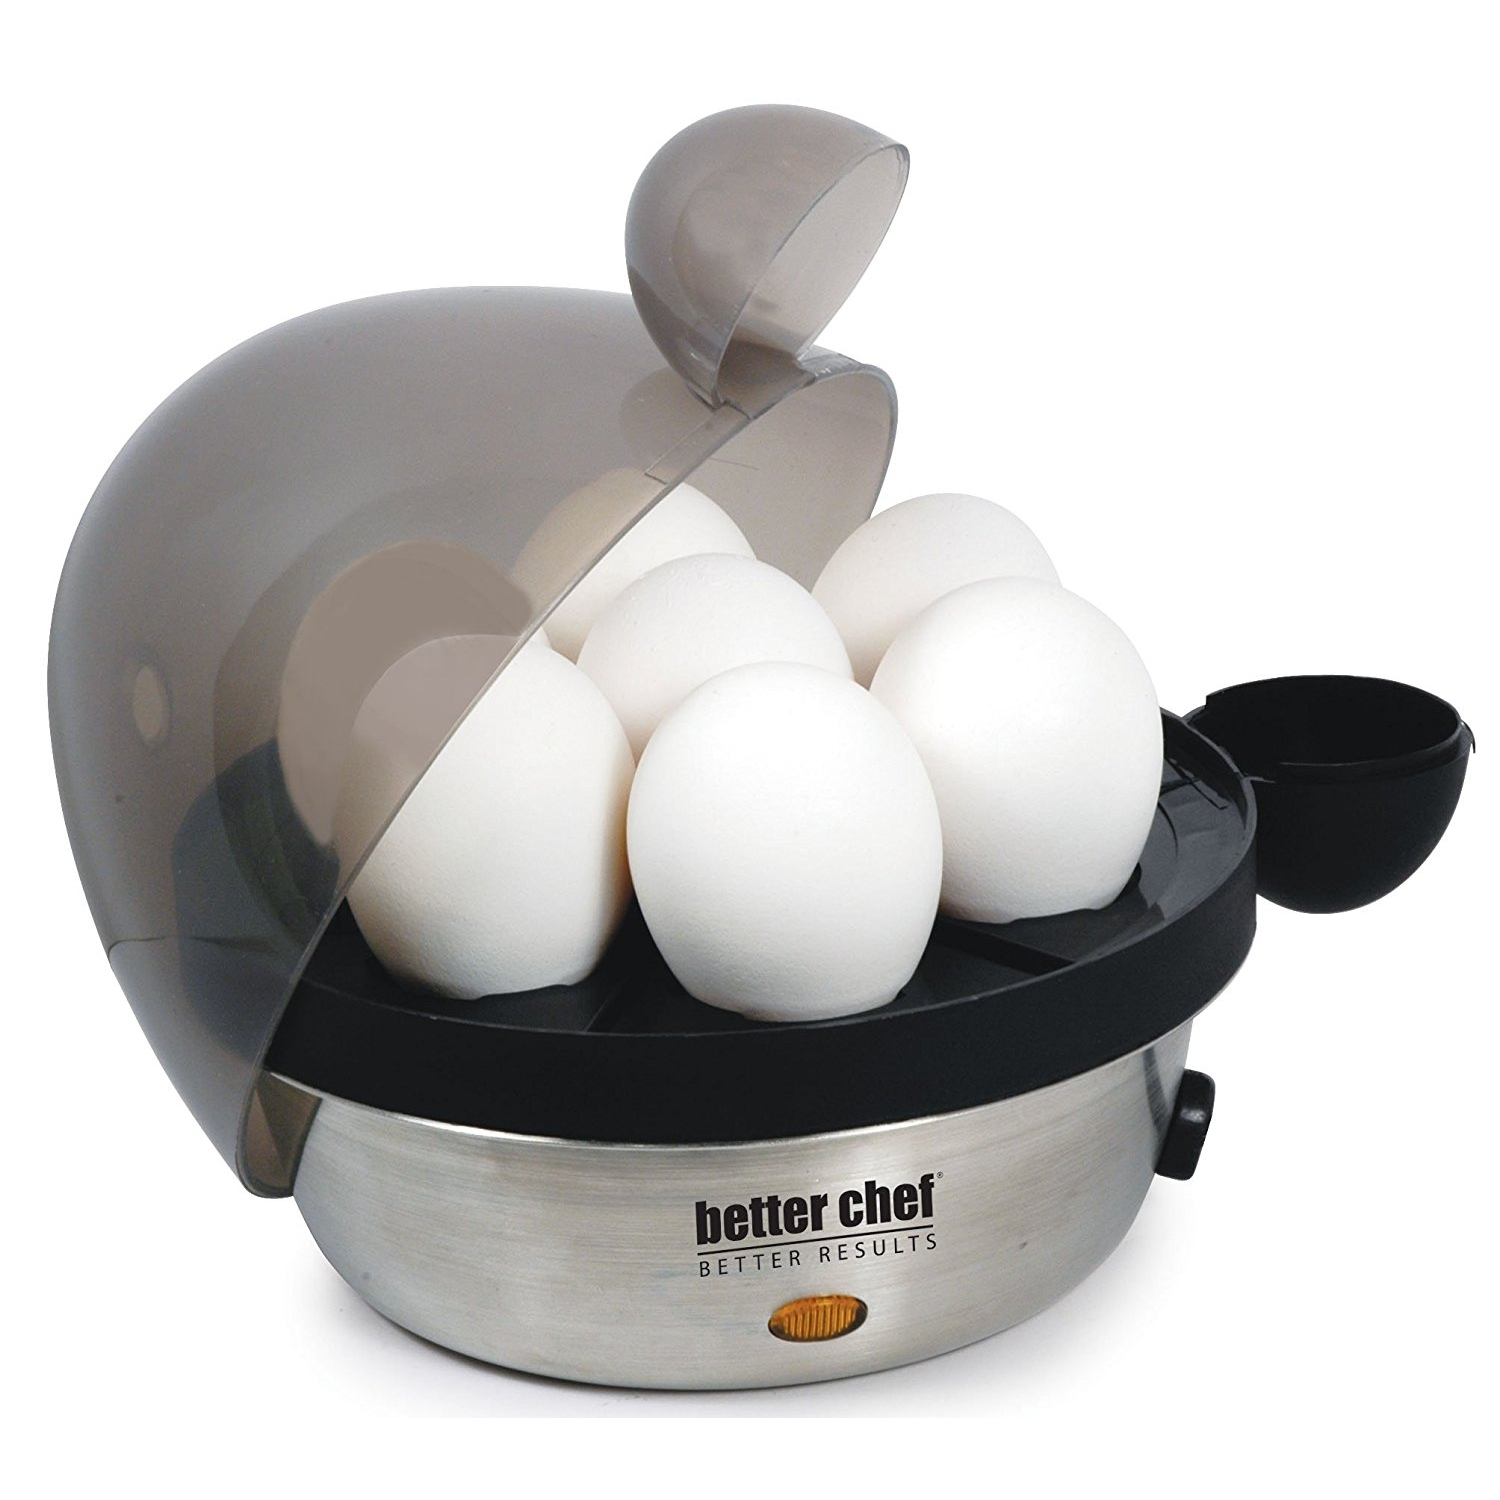 Egg Cooker Accessories, Stainless Steel Electric Rapid Boiled Poached Egg Cooker